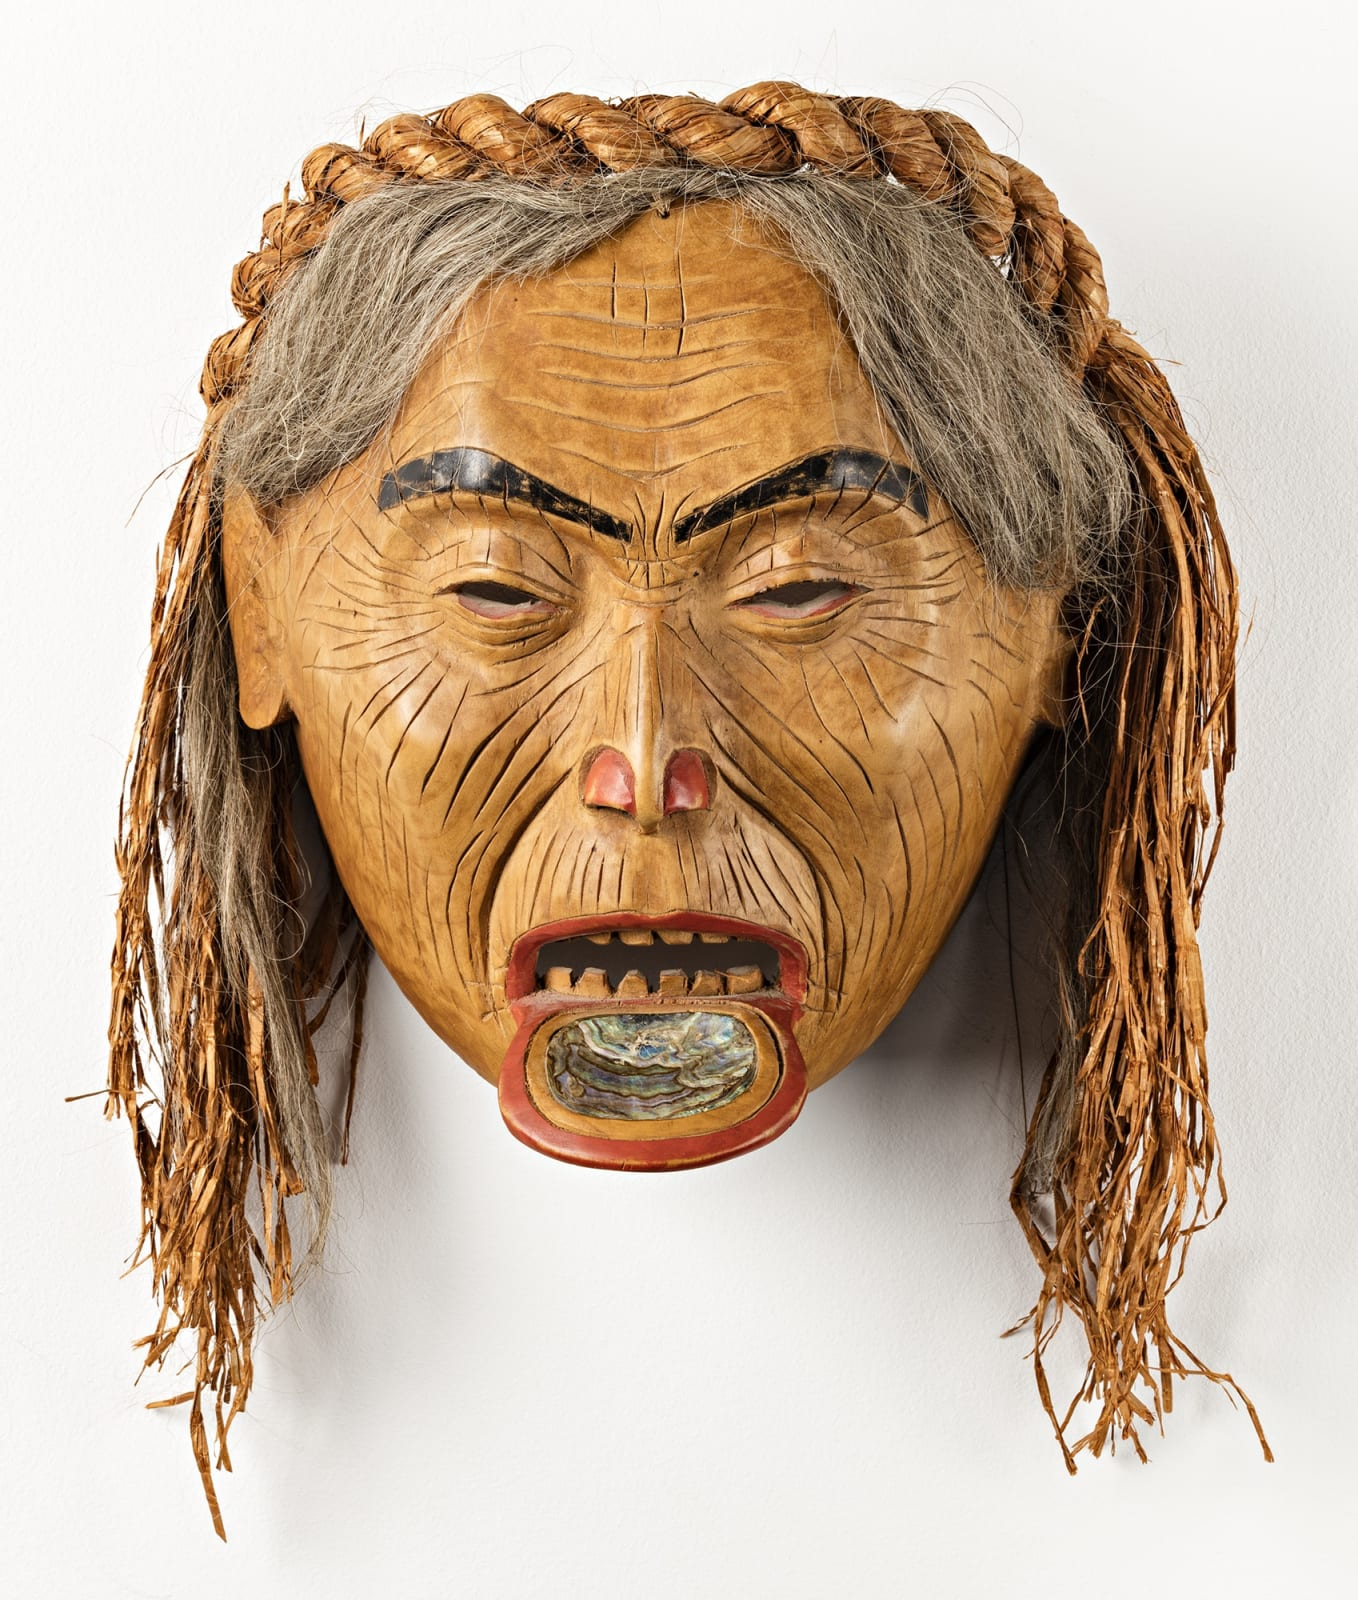 Lot 67 FREDA DIESING (1925-2002), HAIDA, PRINCE RUPERT Old Woman with Labret, 1973 alder, cedar bark, hair, abalone, and paint, 8 x 9 x 6 in (20.3 x 22.9 x 15.2 cm) excluding hair Estimate: $5,000⁠ ⁠⁠— $7,000